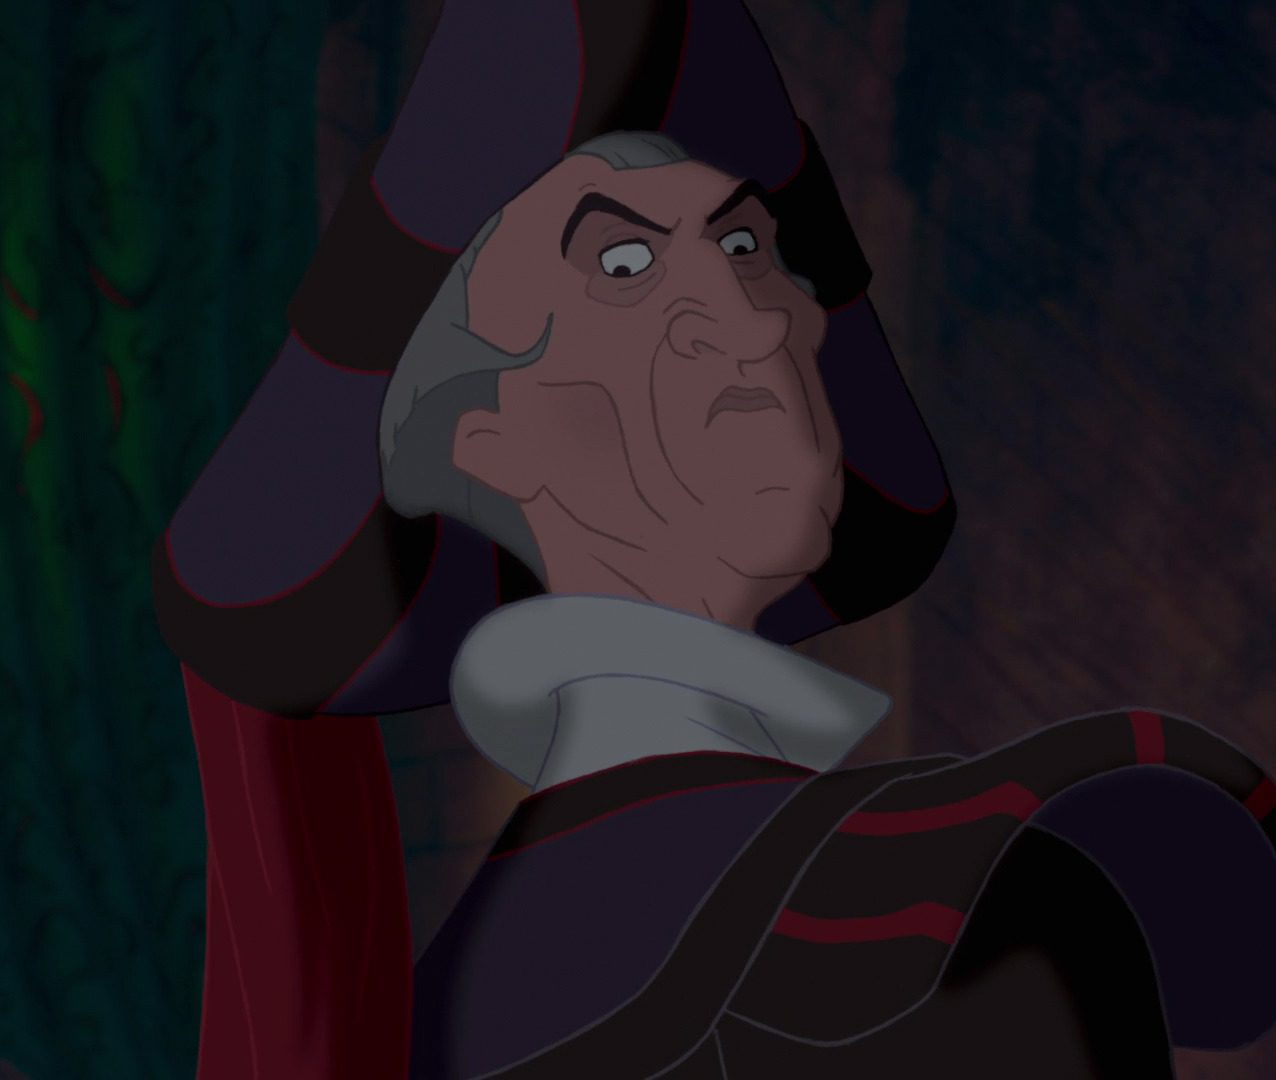 Claude Jean Frollo e1605619272398 20 Characters That Scared The Life Out Of Us As Children